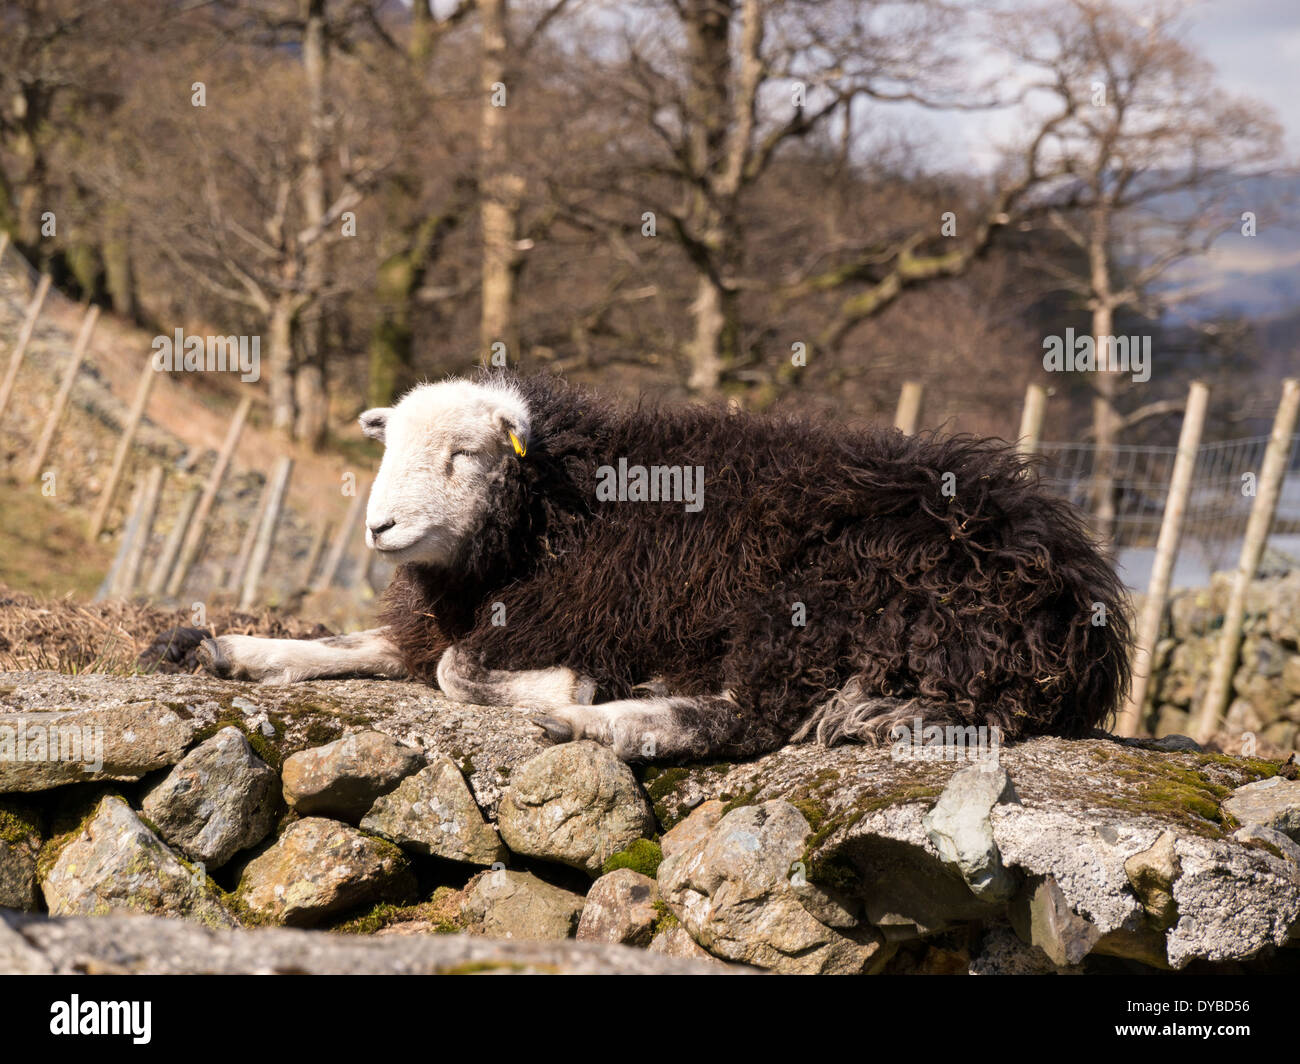 Black And White Sheep Stock Photos  for Sheep Face Black And White  568zmd